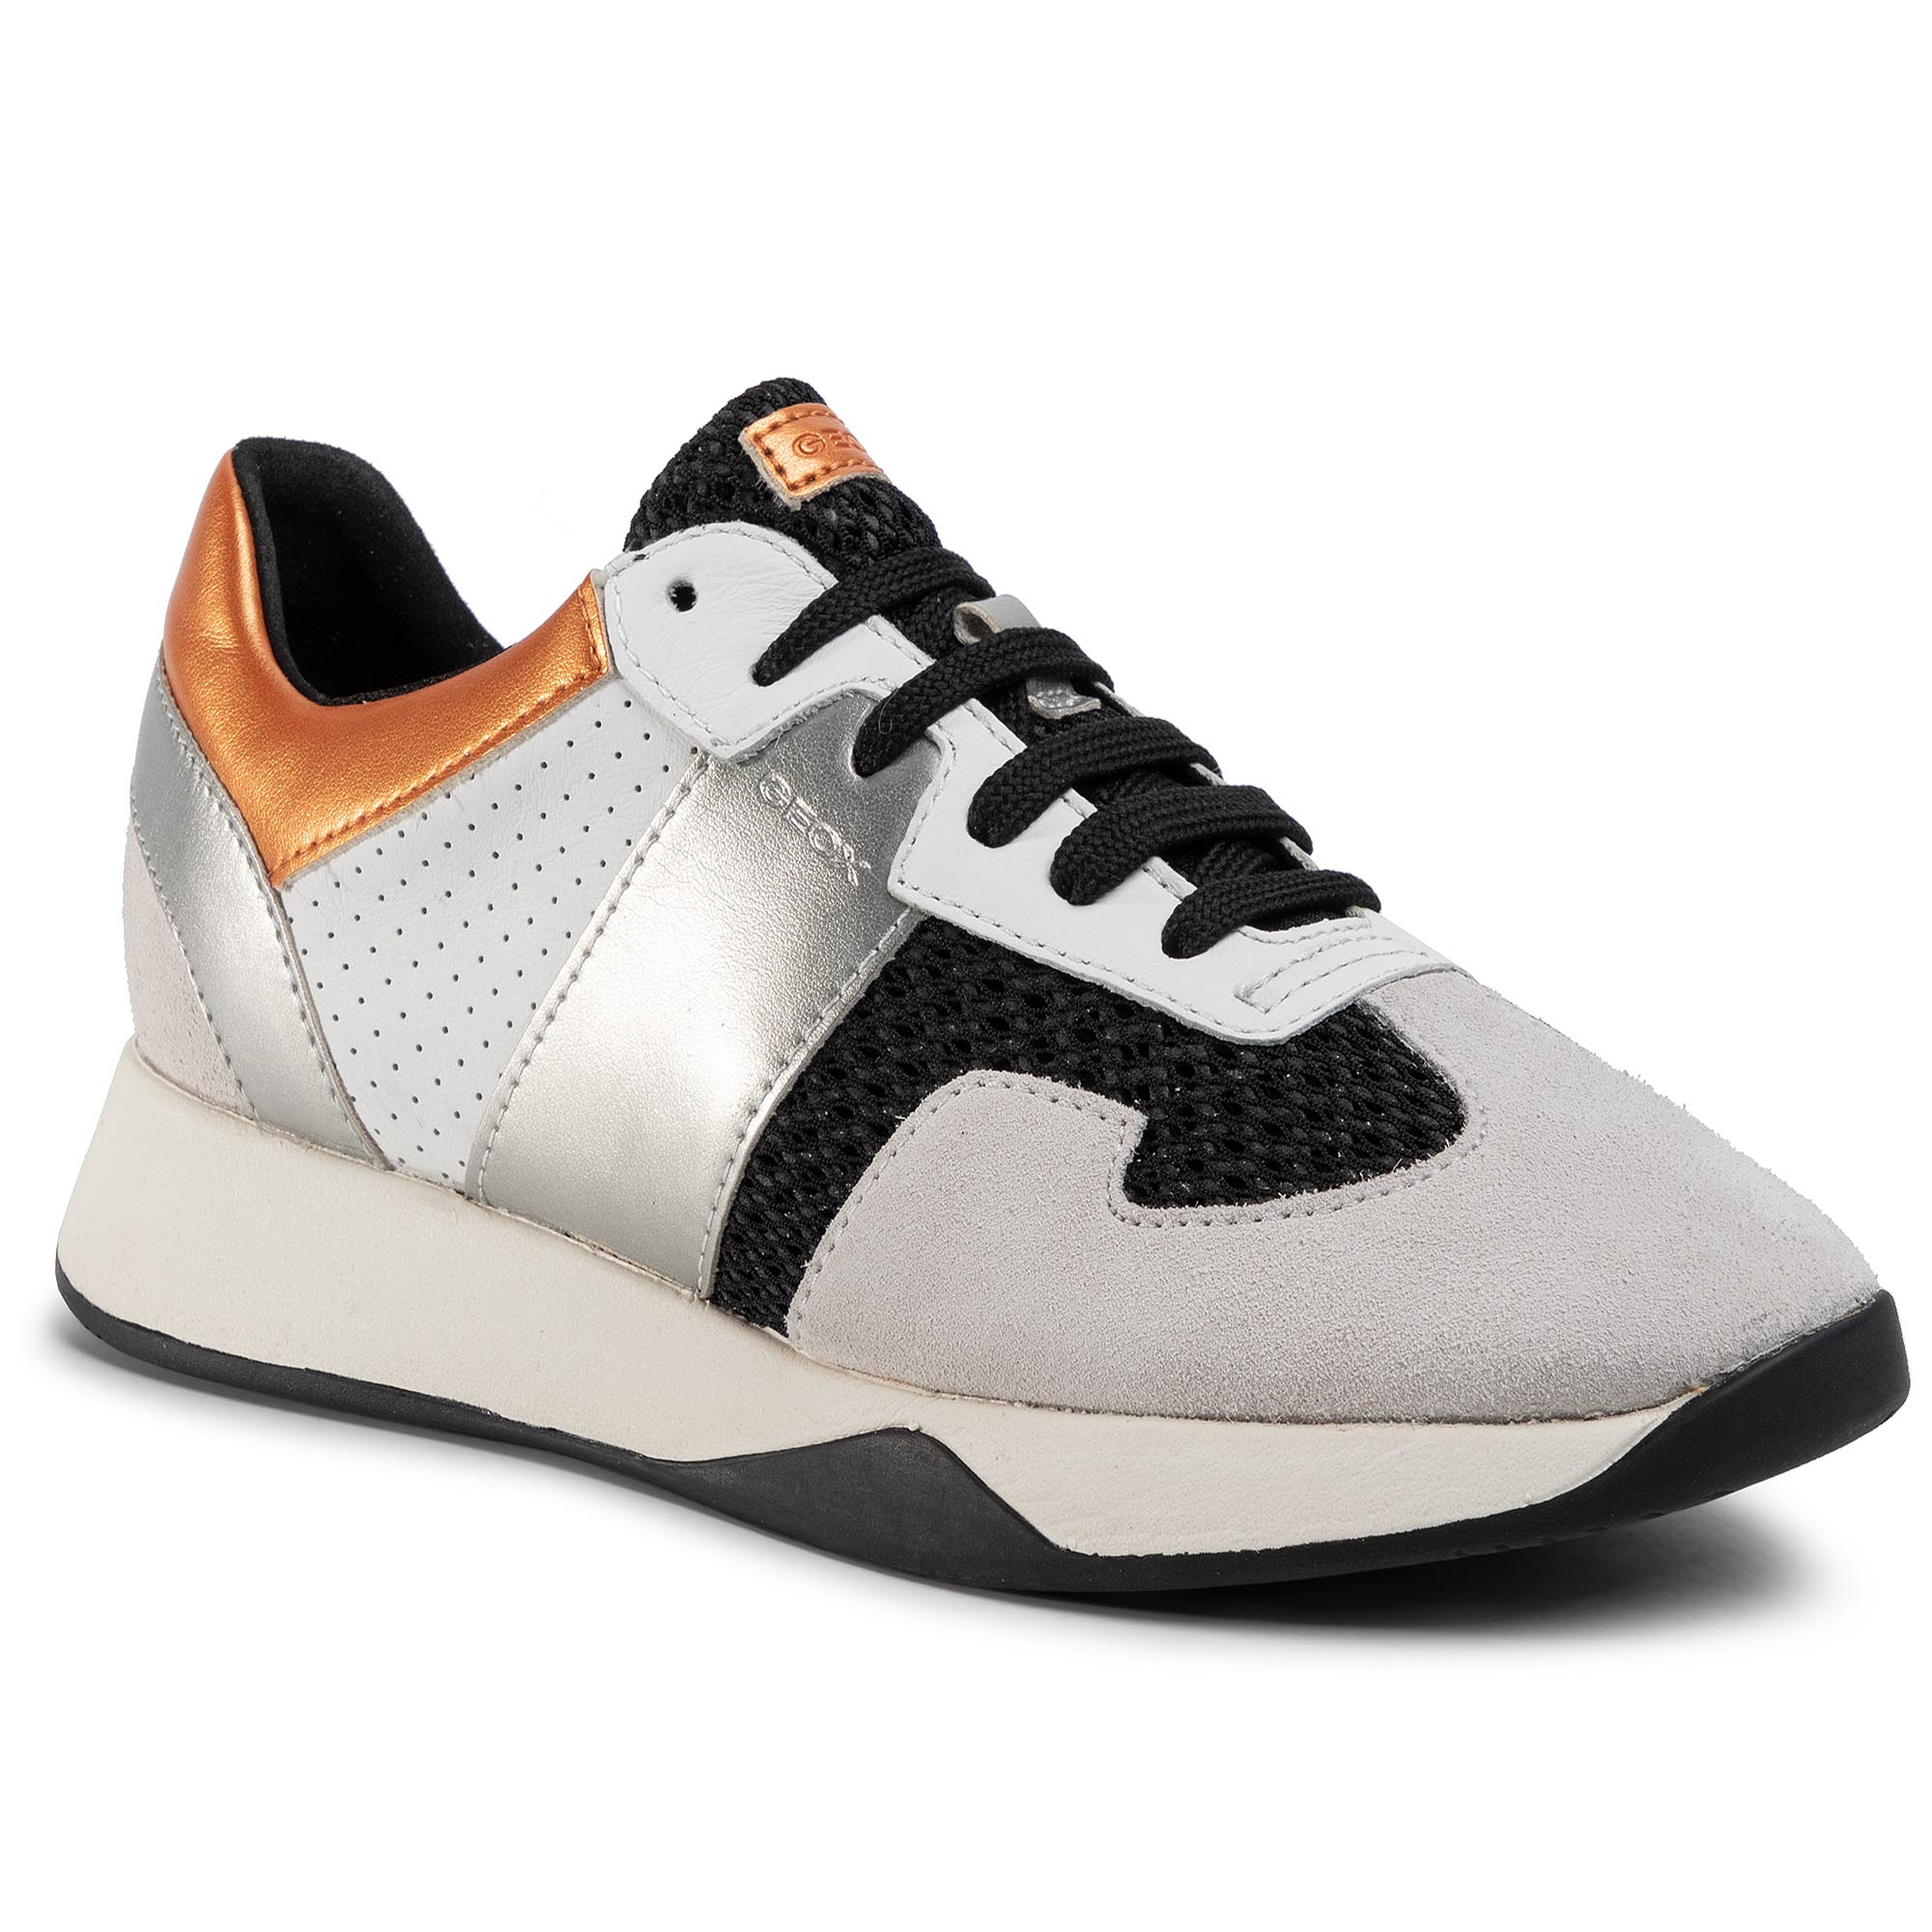 Sneakers GEOX - D Suzzie B D94FRB 01422 C9876 Black/Off White